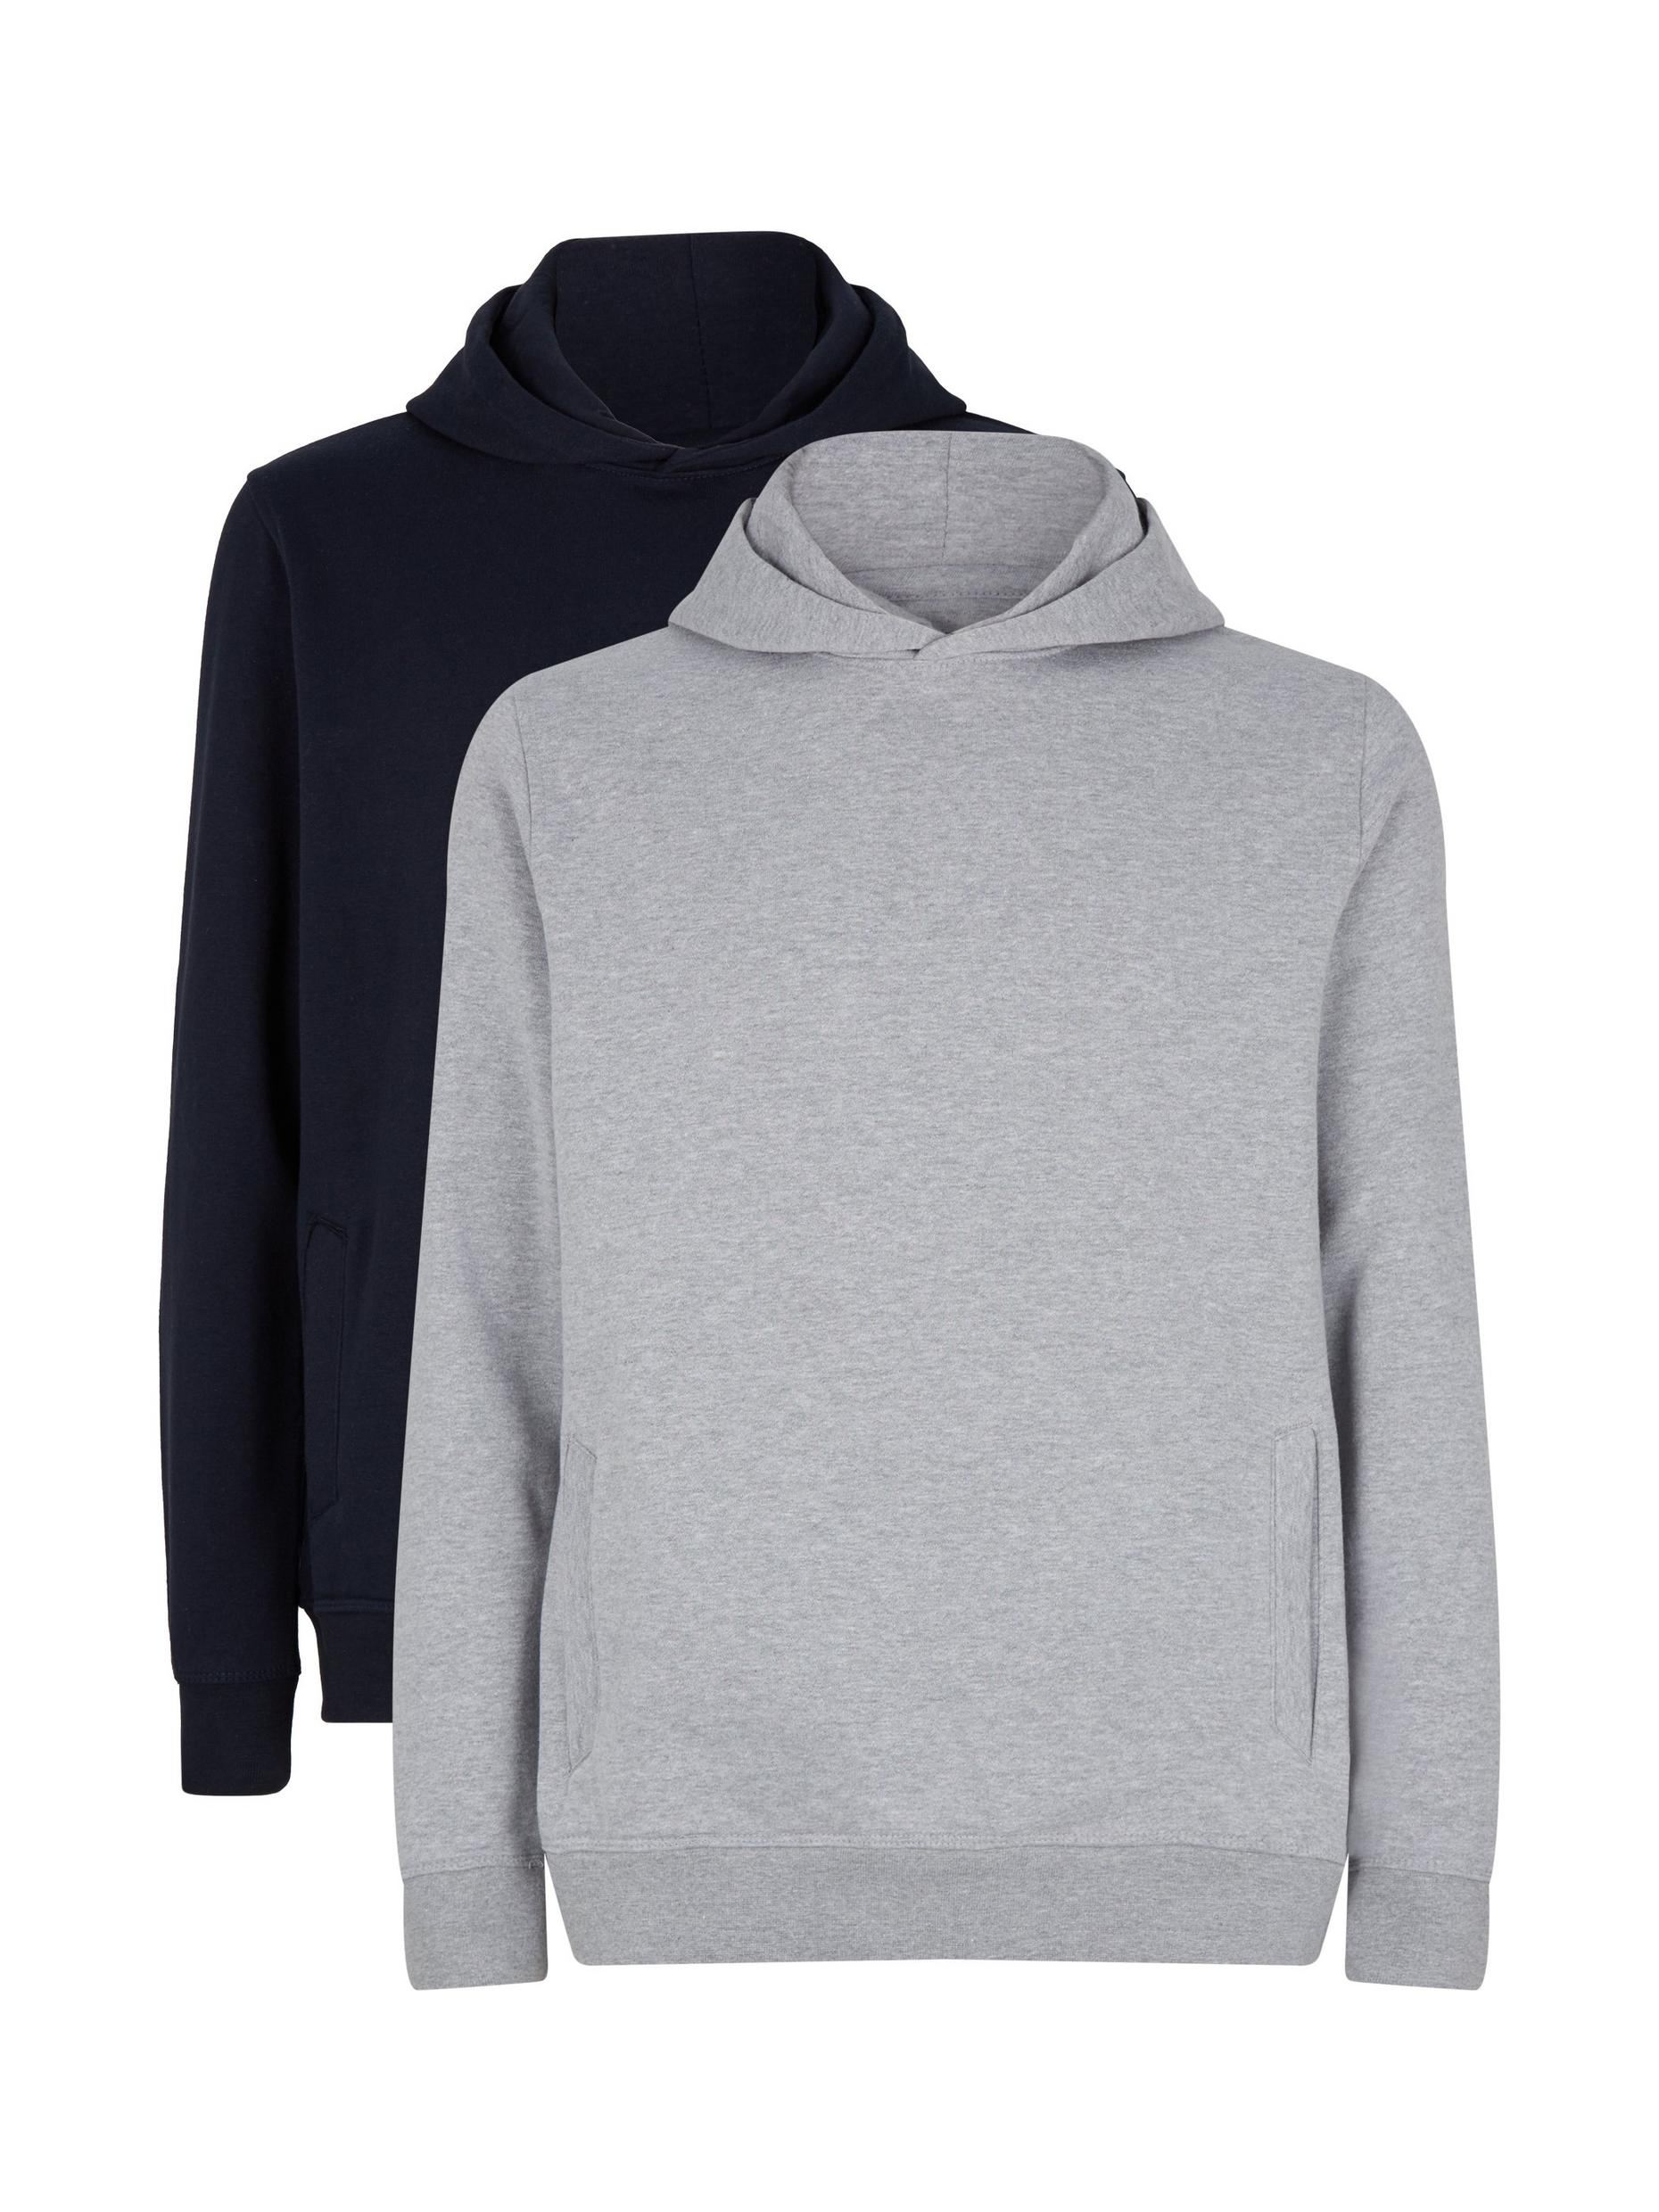 2 Pack Grey and Navy Hoodie